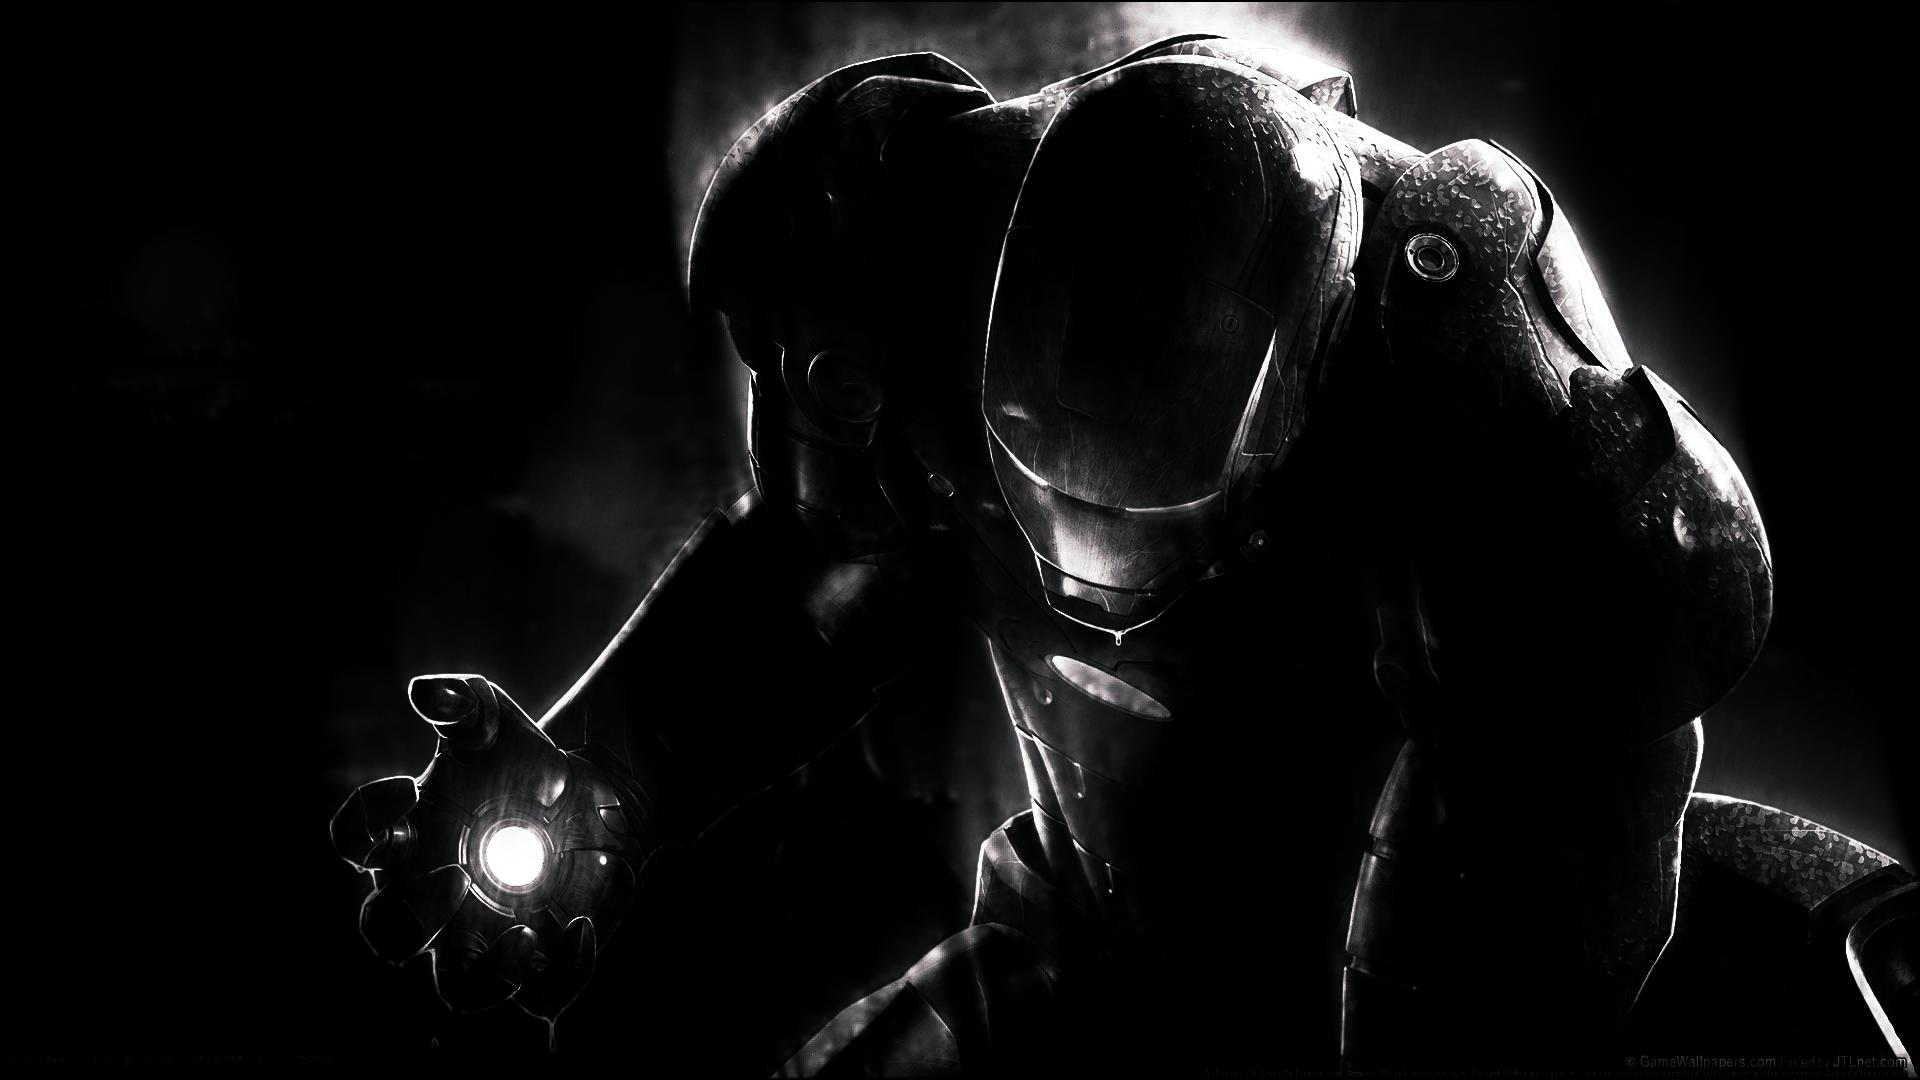 Iron Man Res: 1920x1080 HD / Size:121kb. Views: 277365